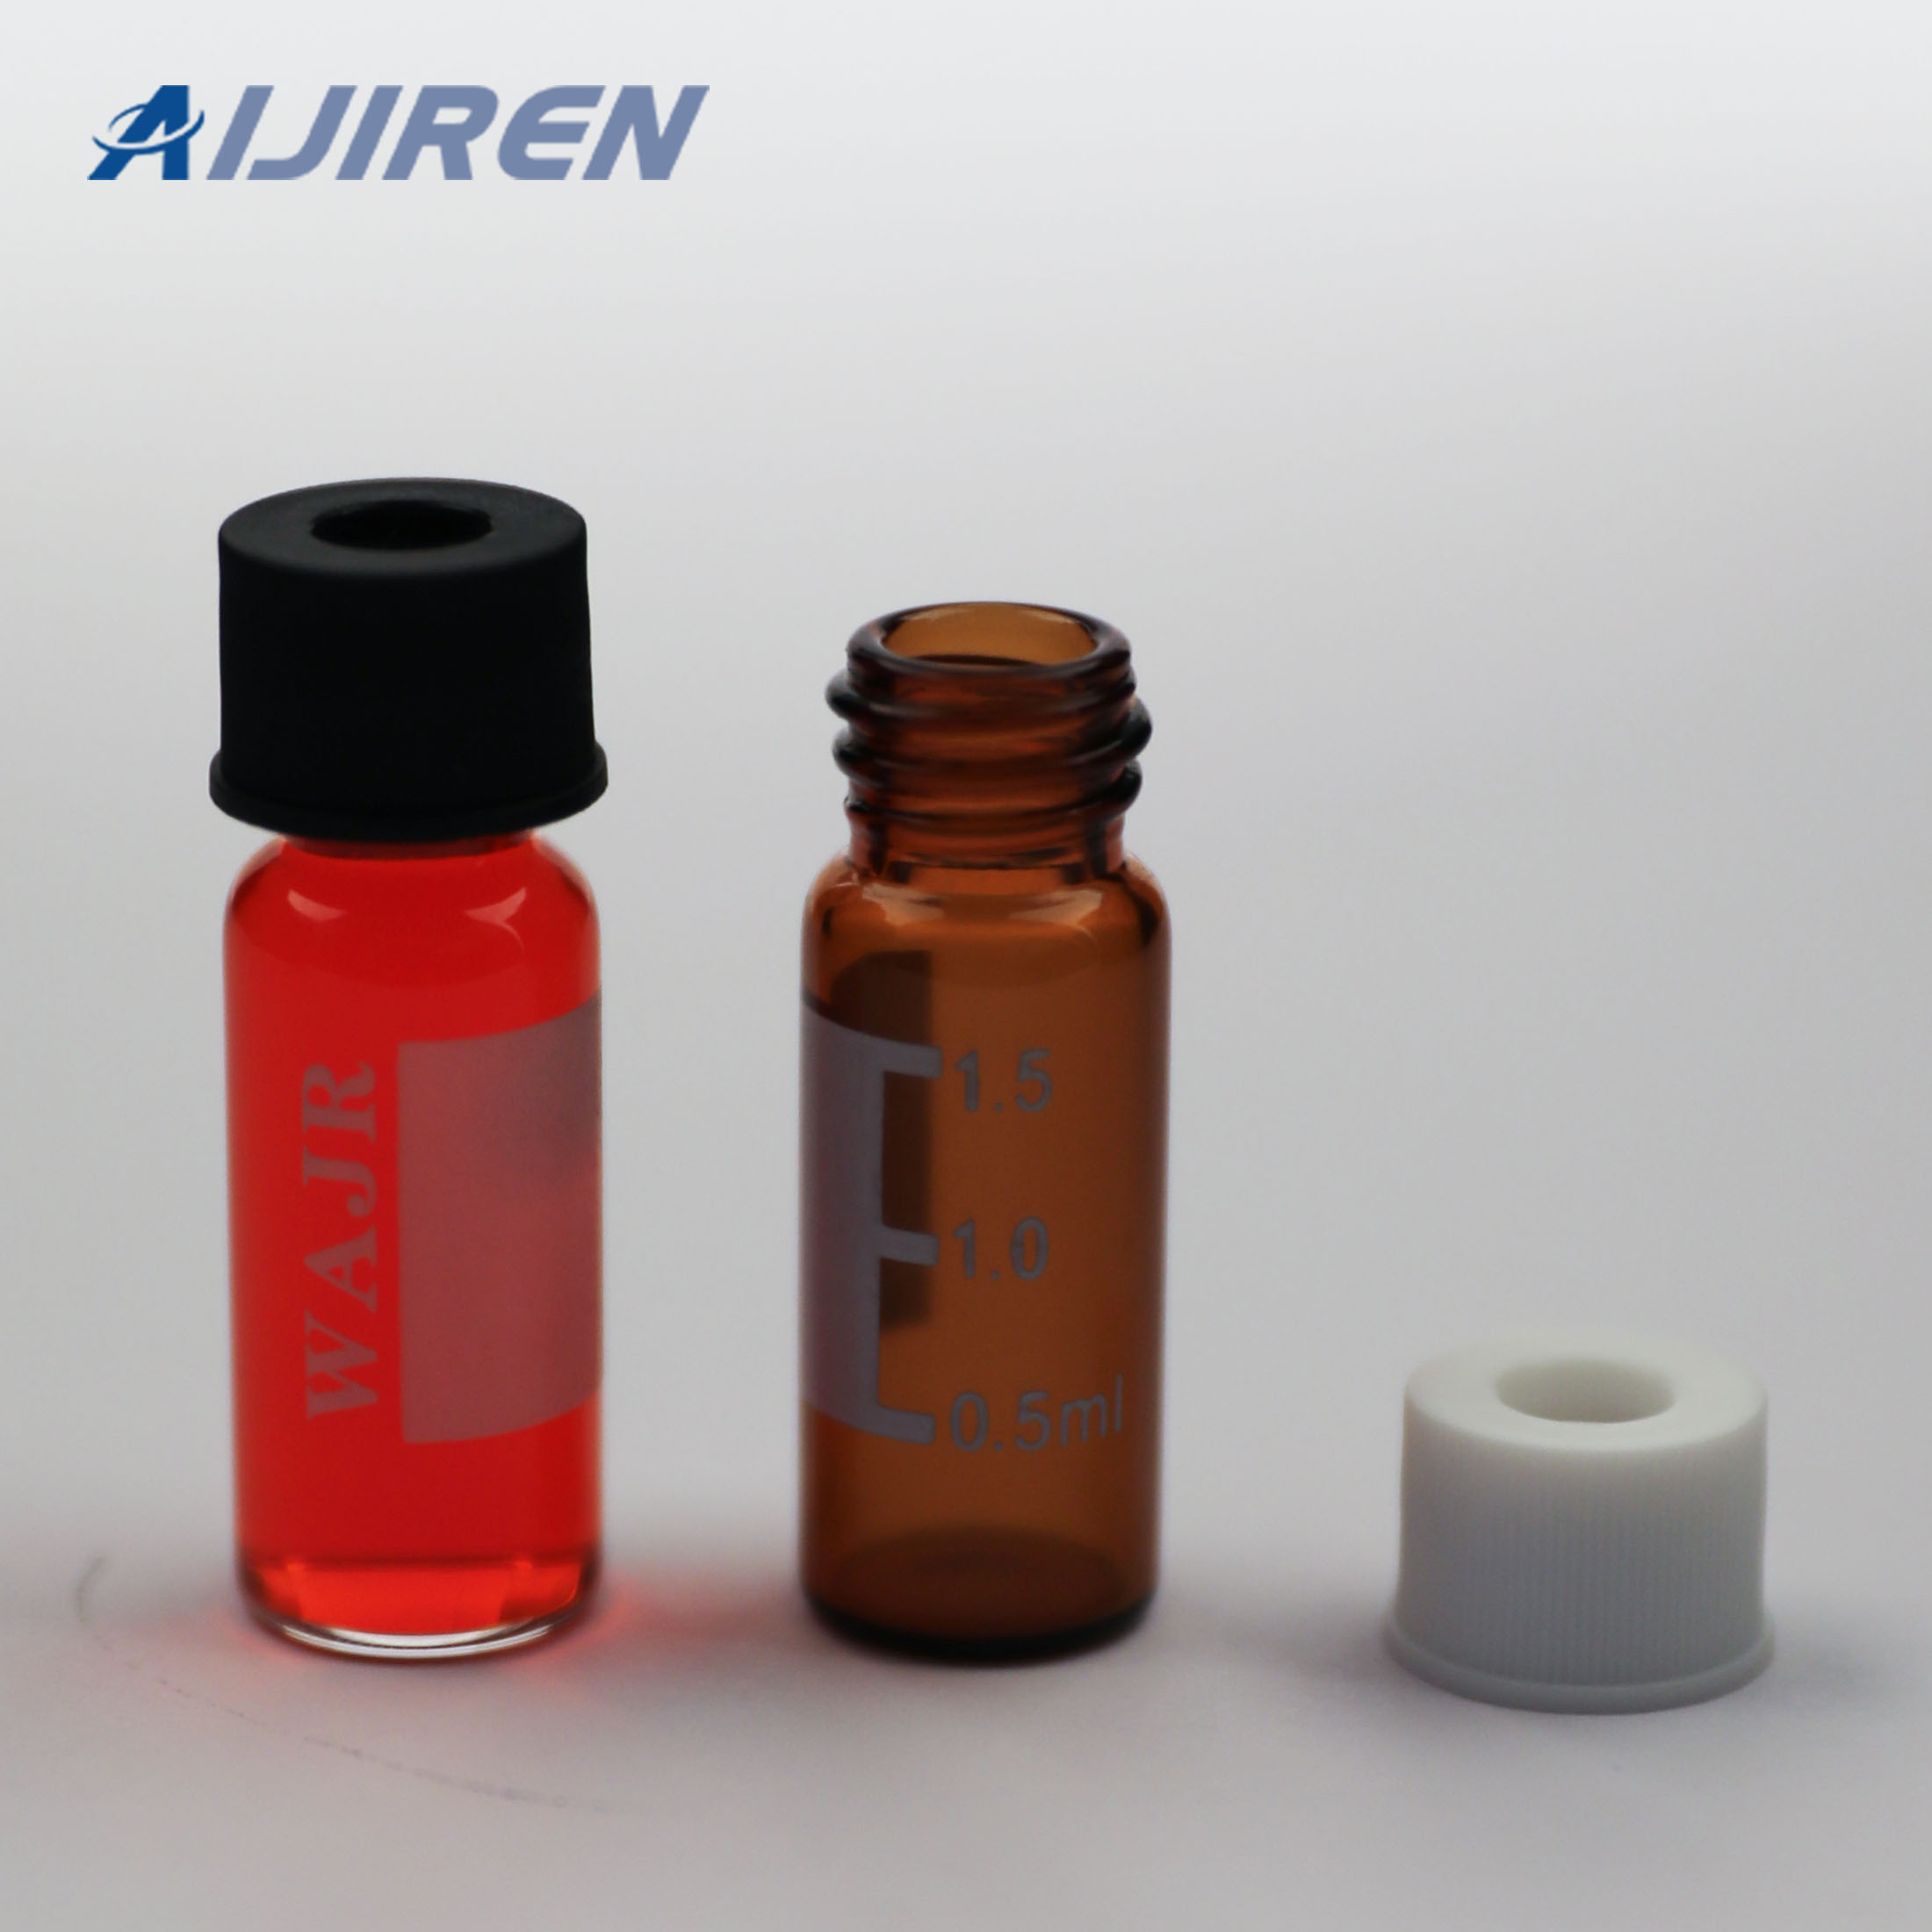 20ml headspace vial8-425 2ml Amber and Clear Glass HPLC Vial for SHIMADZU